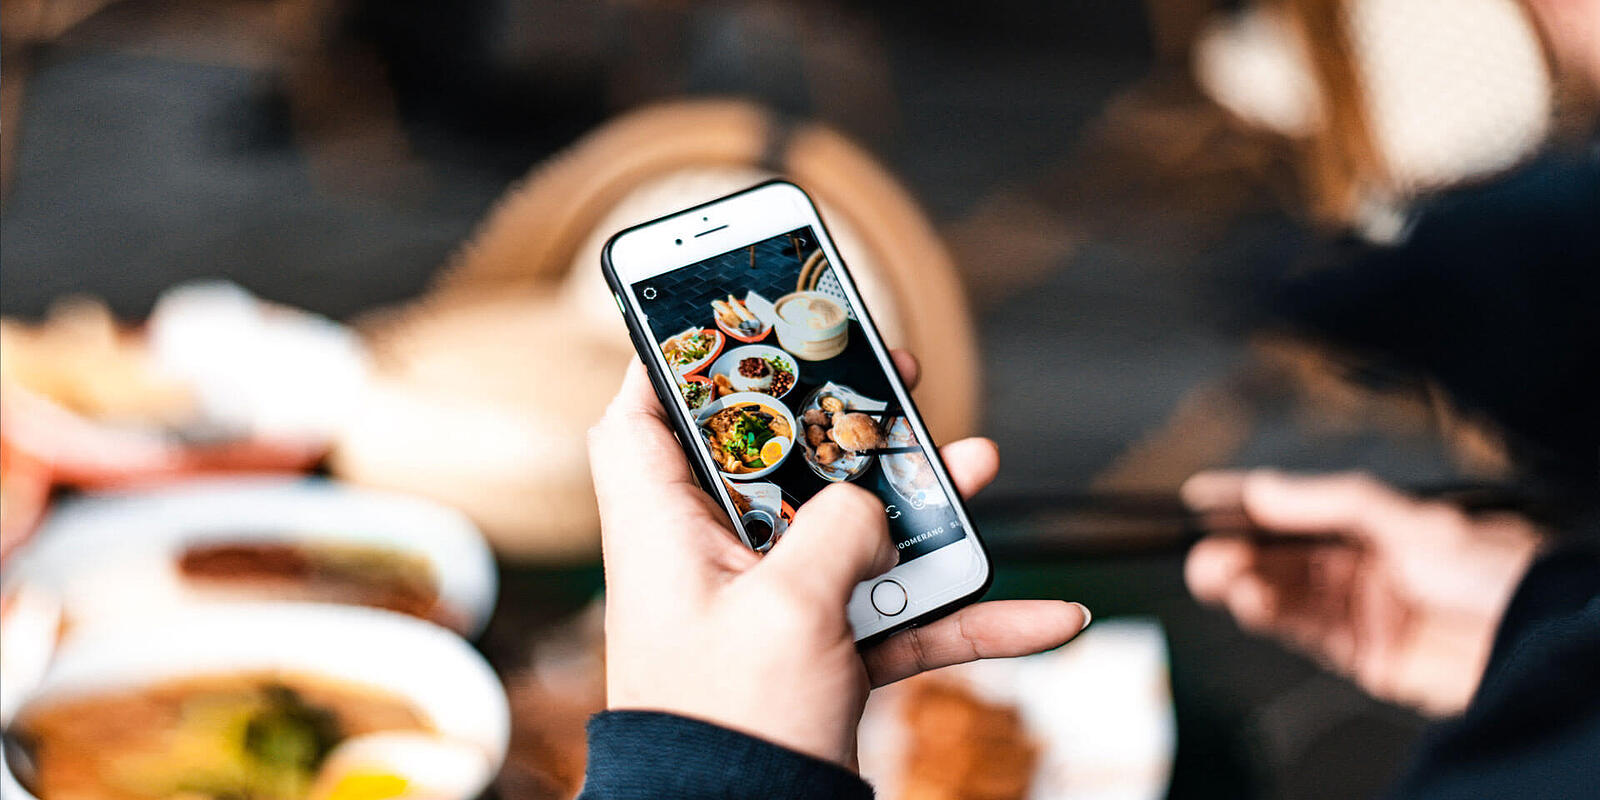 5 ways to offer amazing personalized service in your restaurant